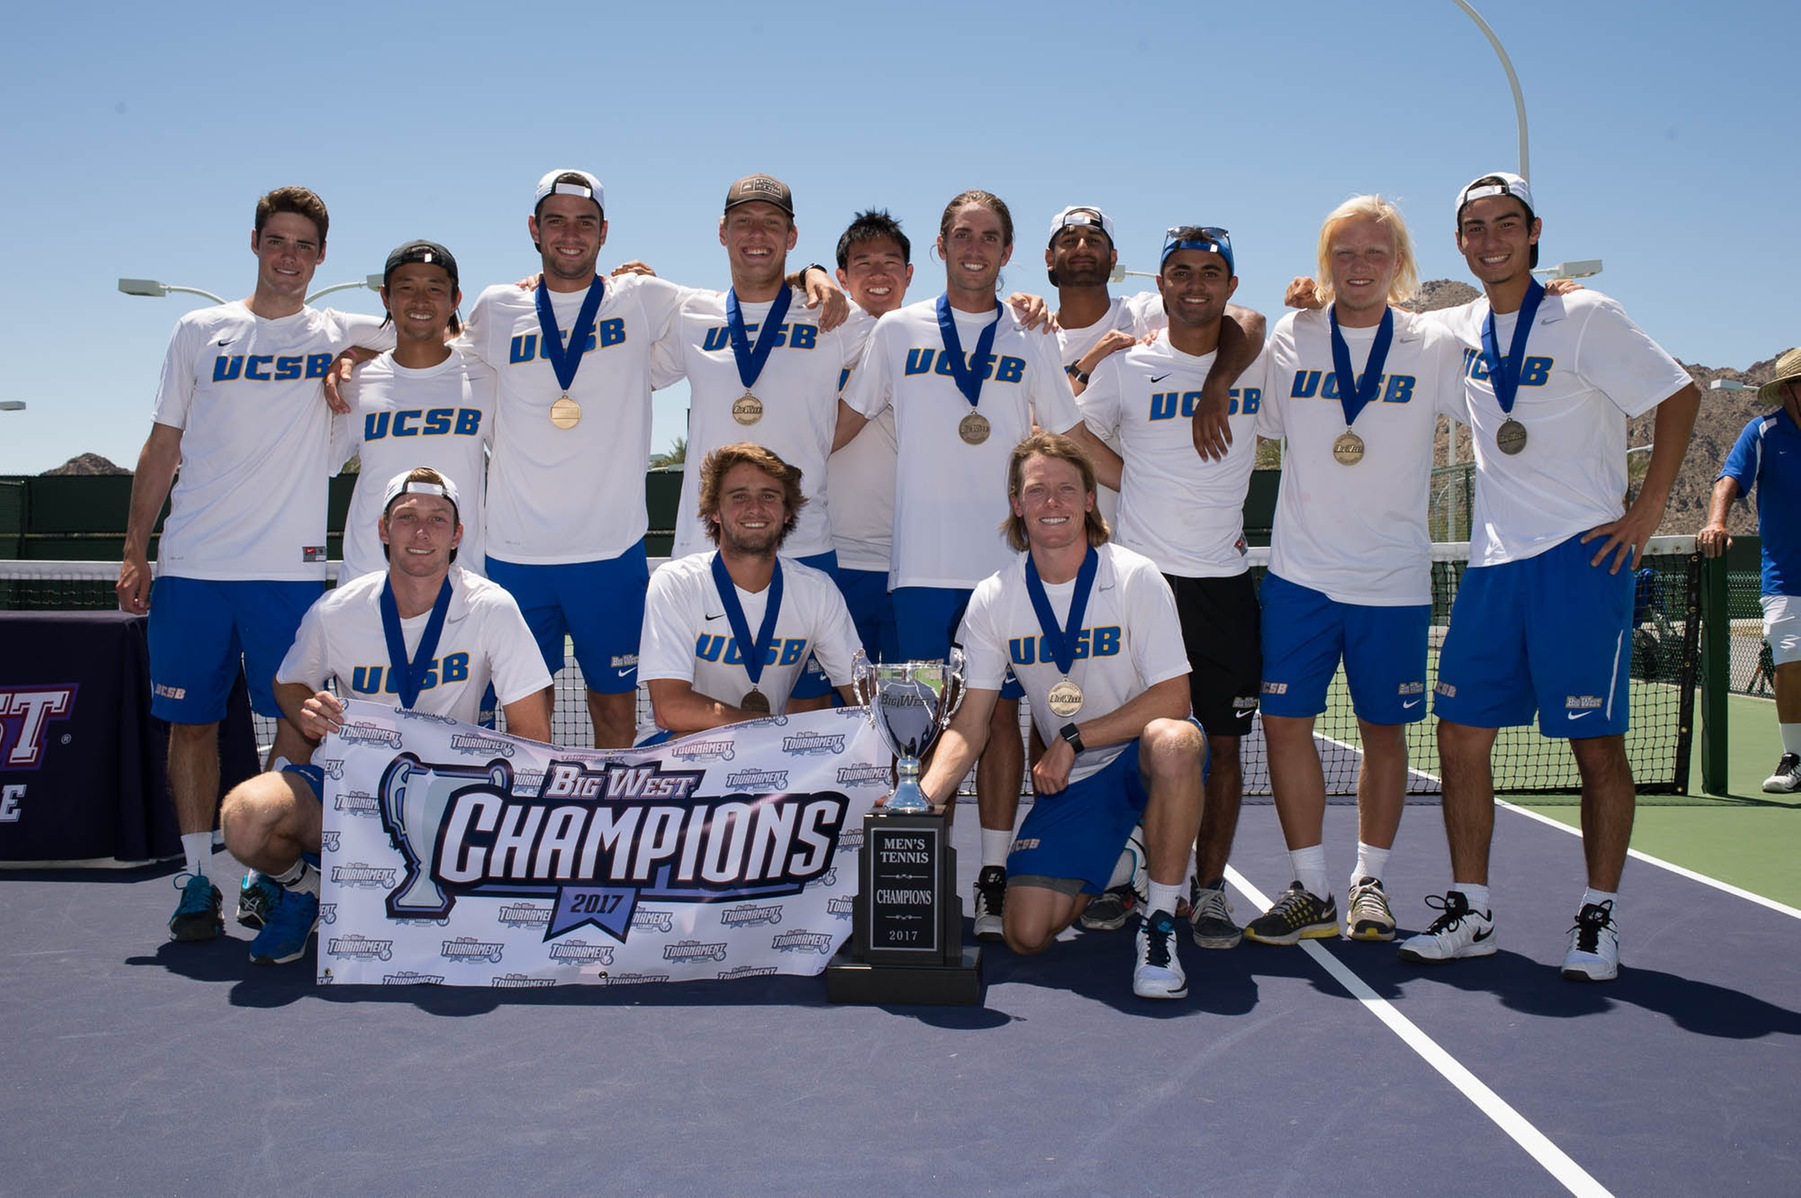 The UCSB men's tennis team (above) looks on after clinching their third straight Big West title on Sunday.